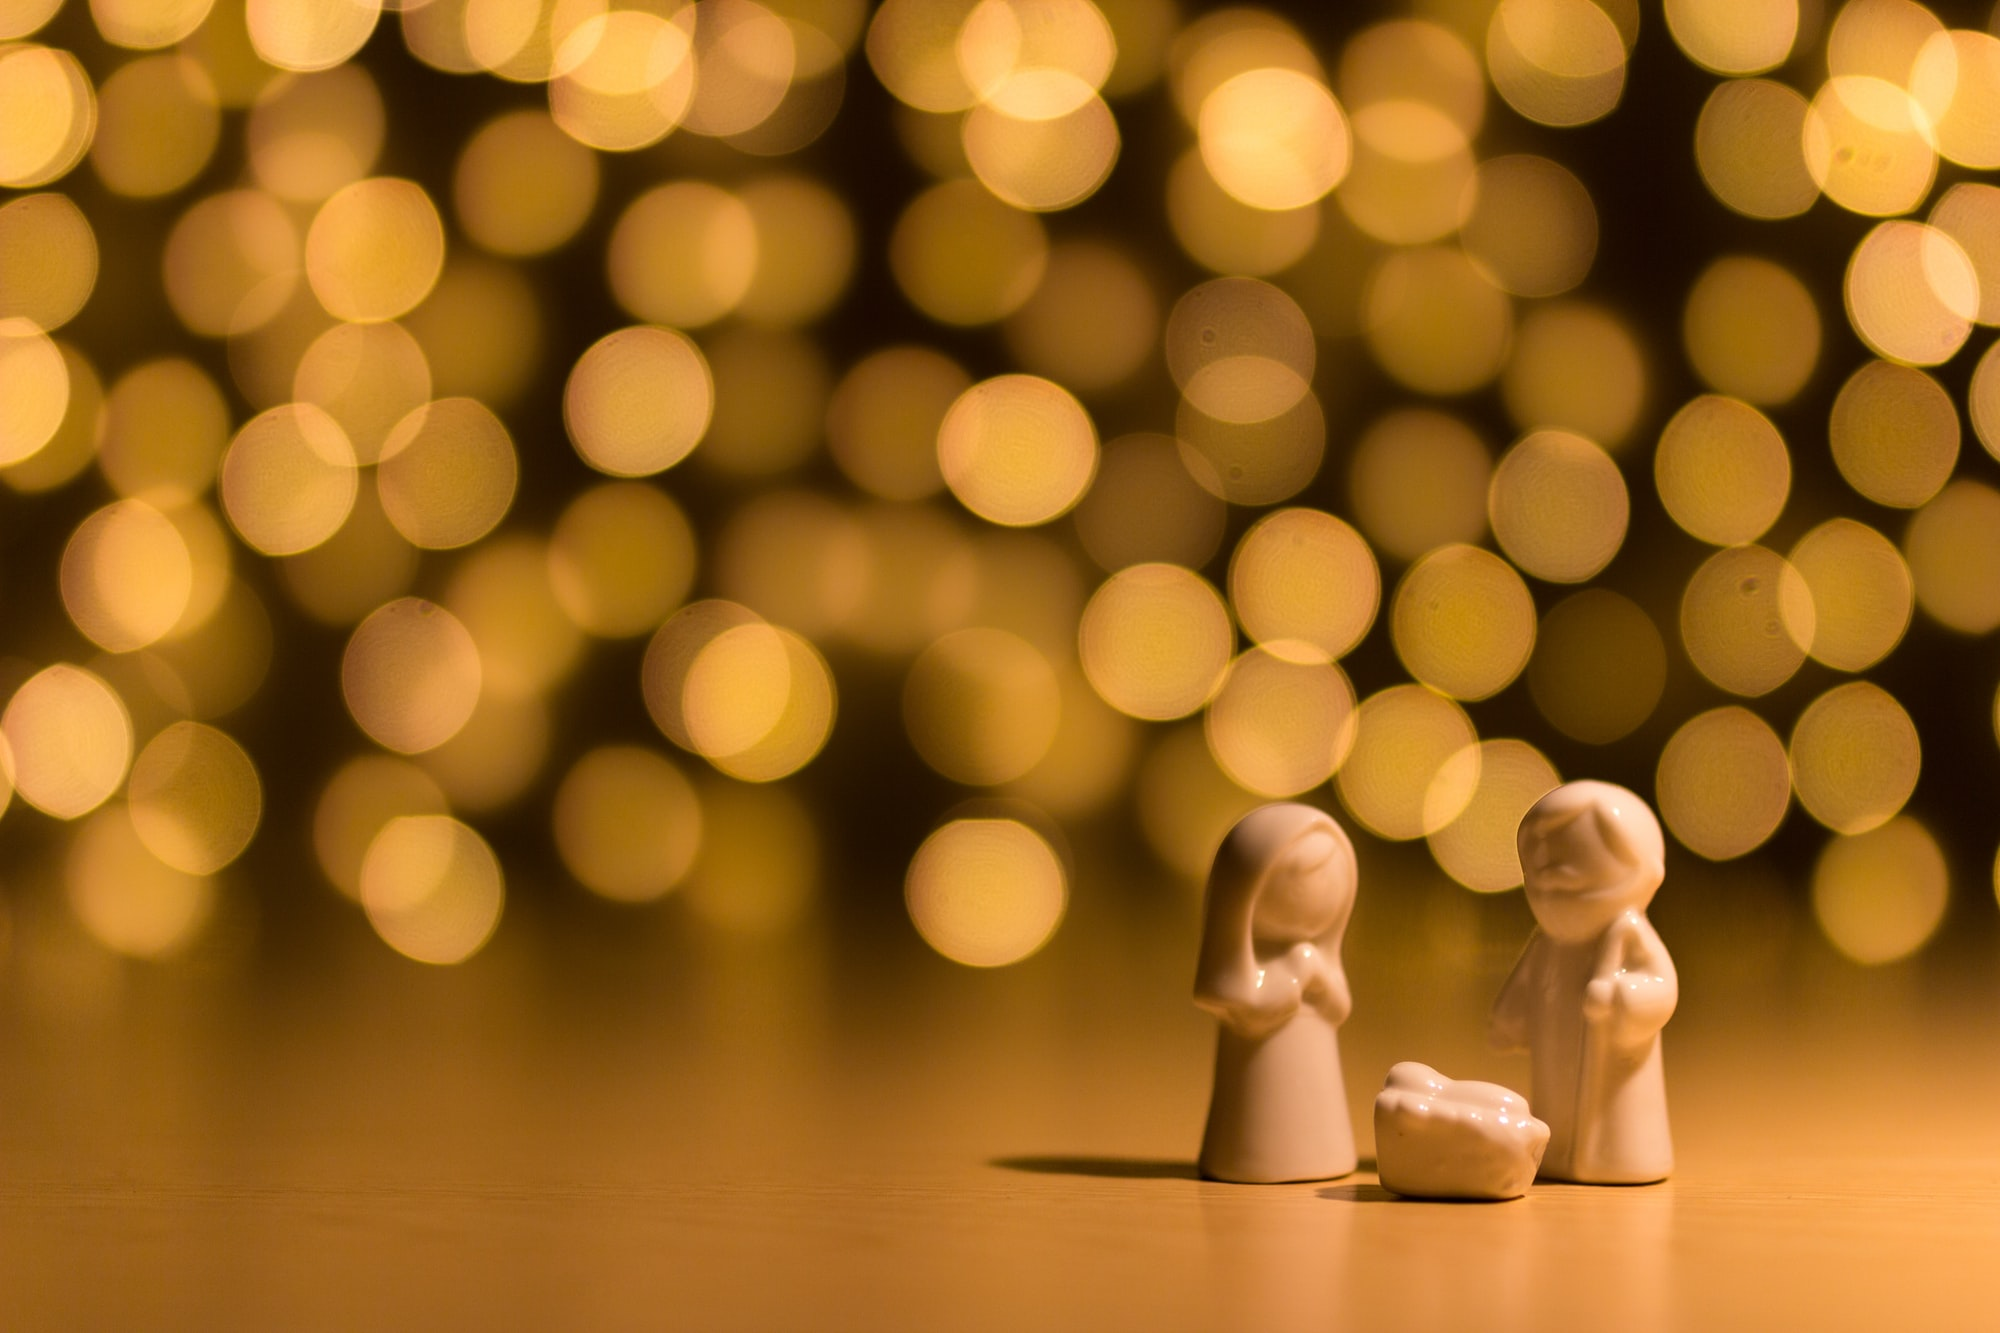 I took this shot whilst making a short video, inspired by the Gospel accounts of the birth of Jesus.  My friend lent me their beautiful nativity set, some other friends lent me their desk lamps for lighting and it's amazing what you can achieve with some fairylights, sellotape and depth of field.  Anyways, Merry Christmas. God bless us, everyone.